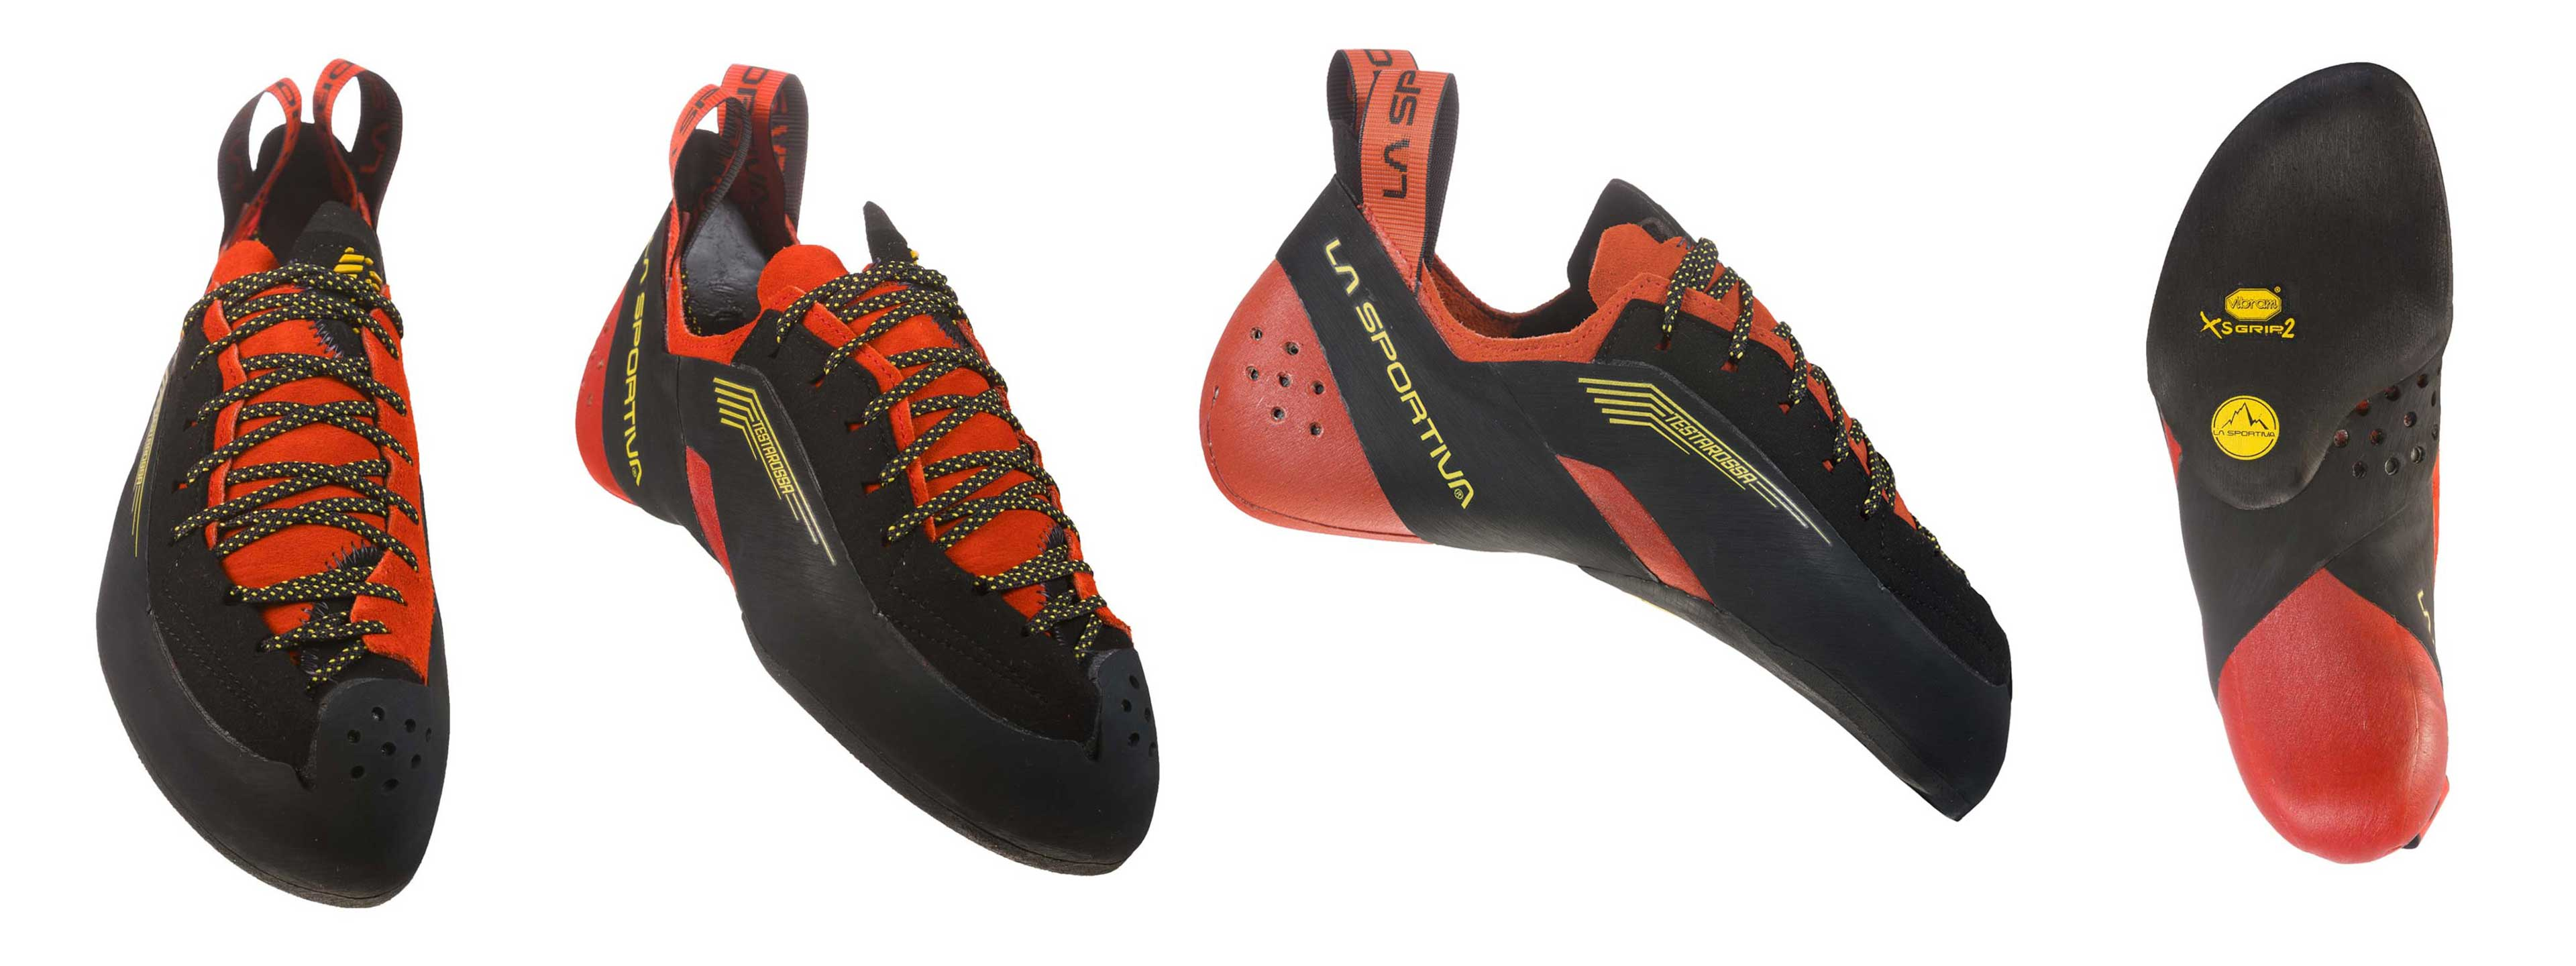 Key points - New La Sportiva Testarossa 2019